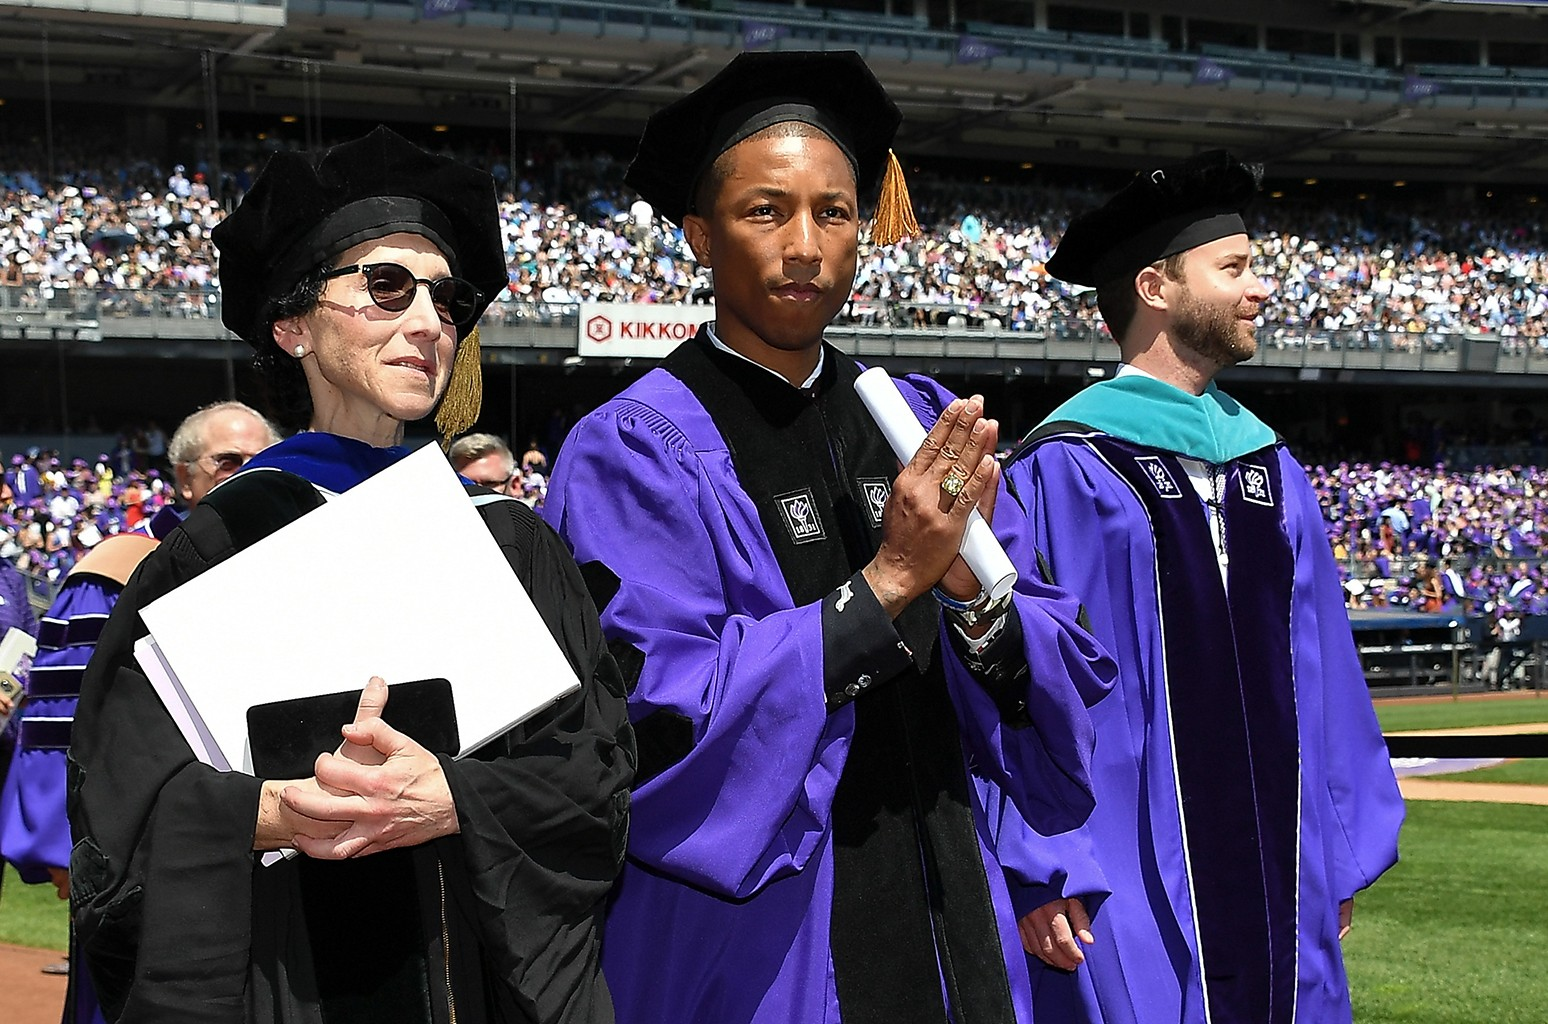 Pharrell Williams attends the New York University 2017 Commencement at Yankee Stadium on May 17, 2017 in New York City.